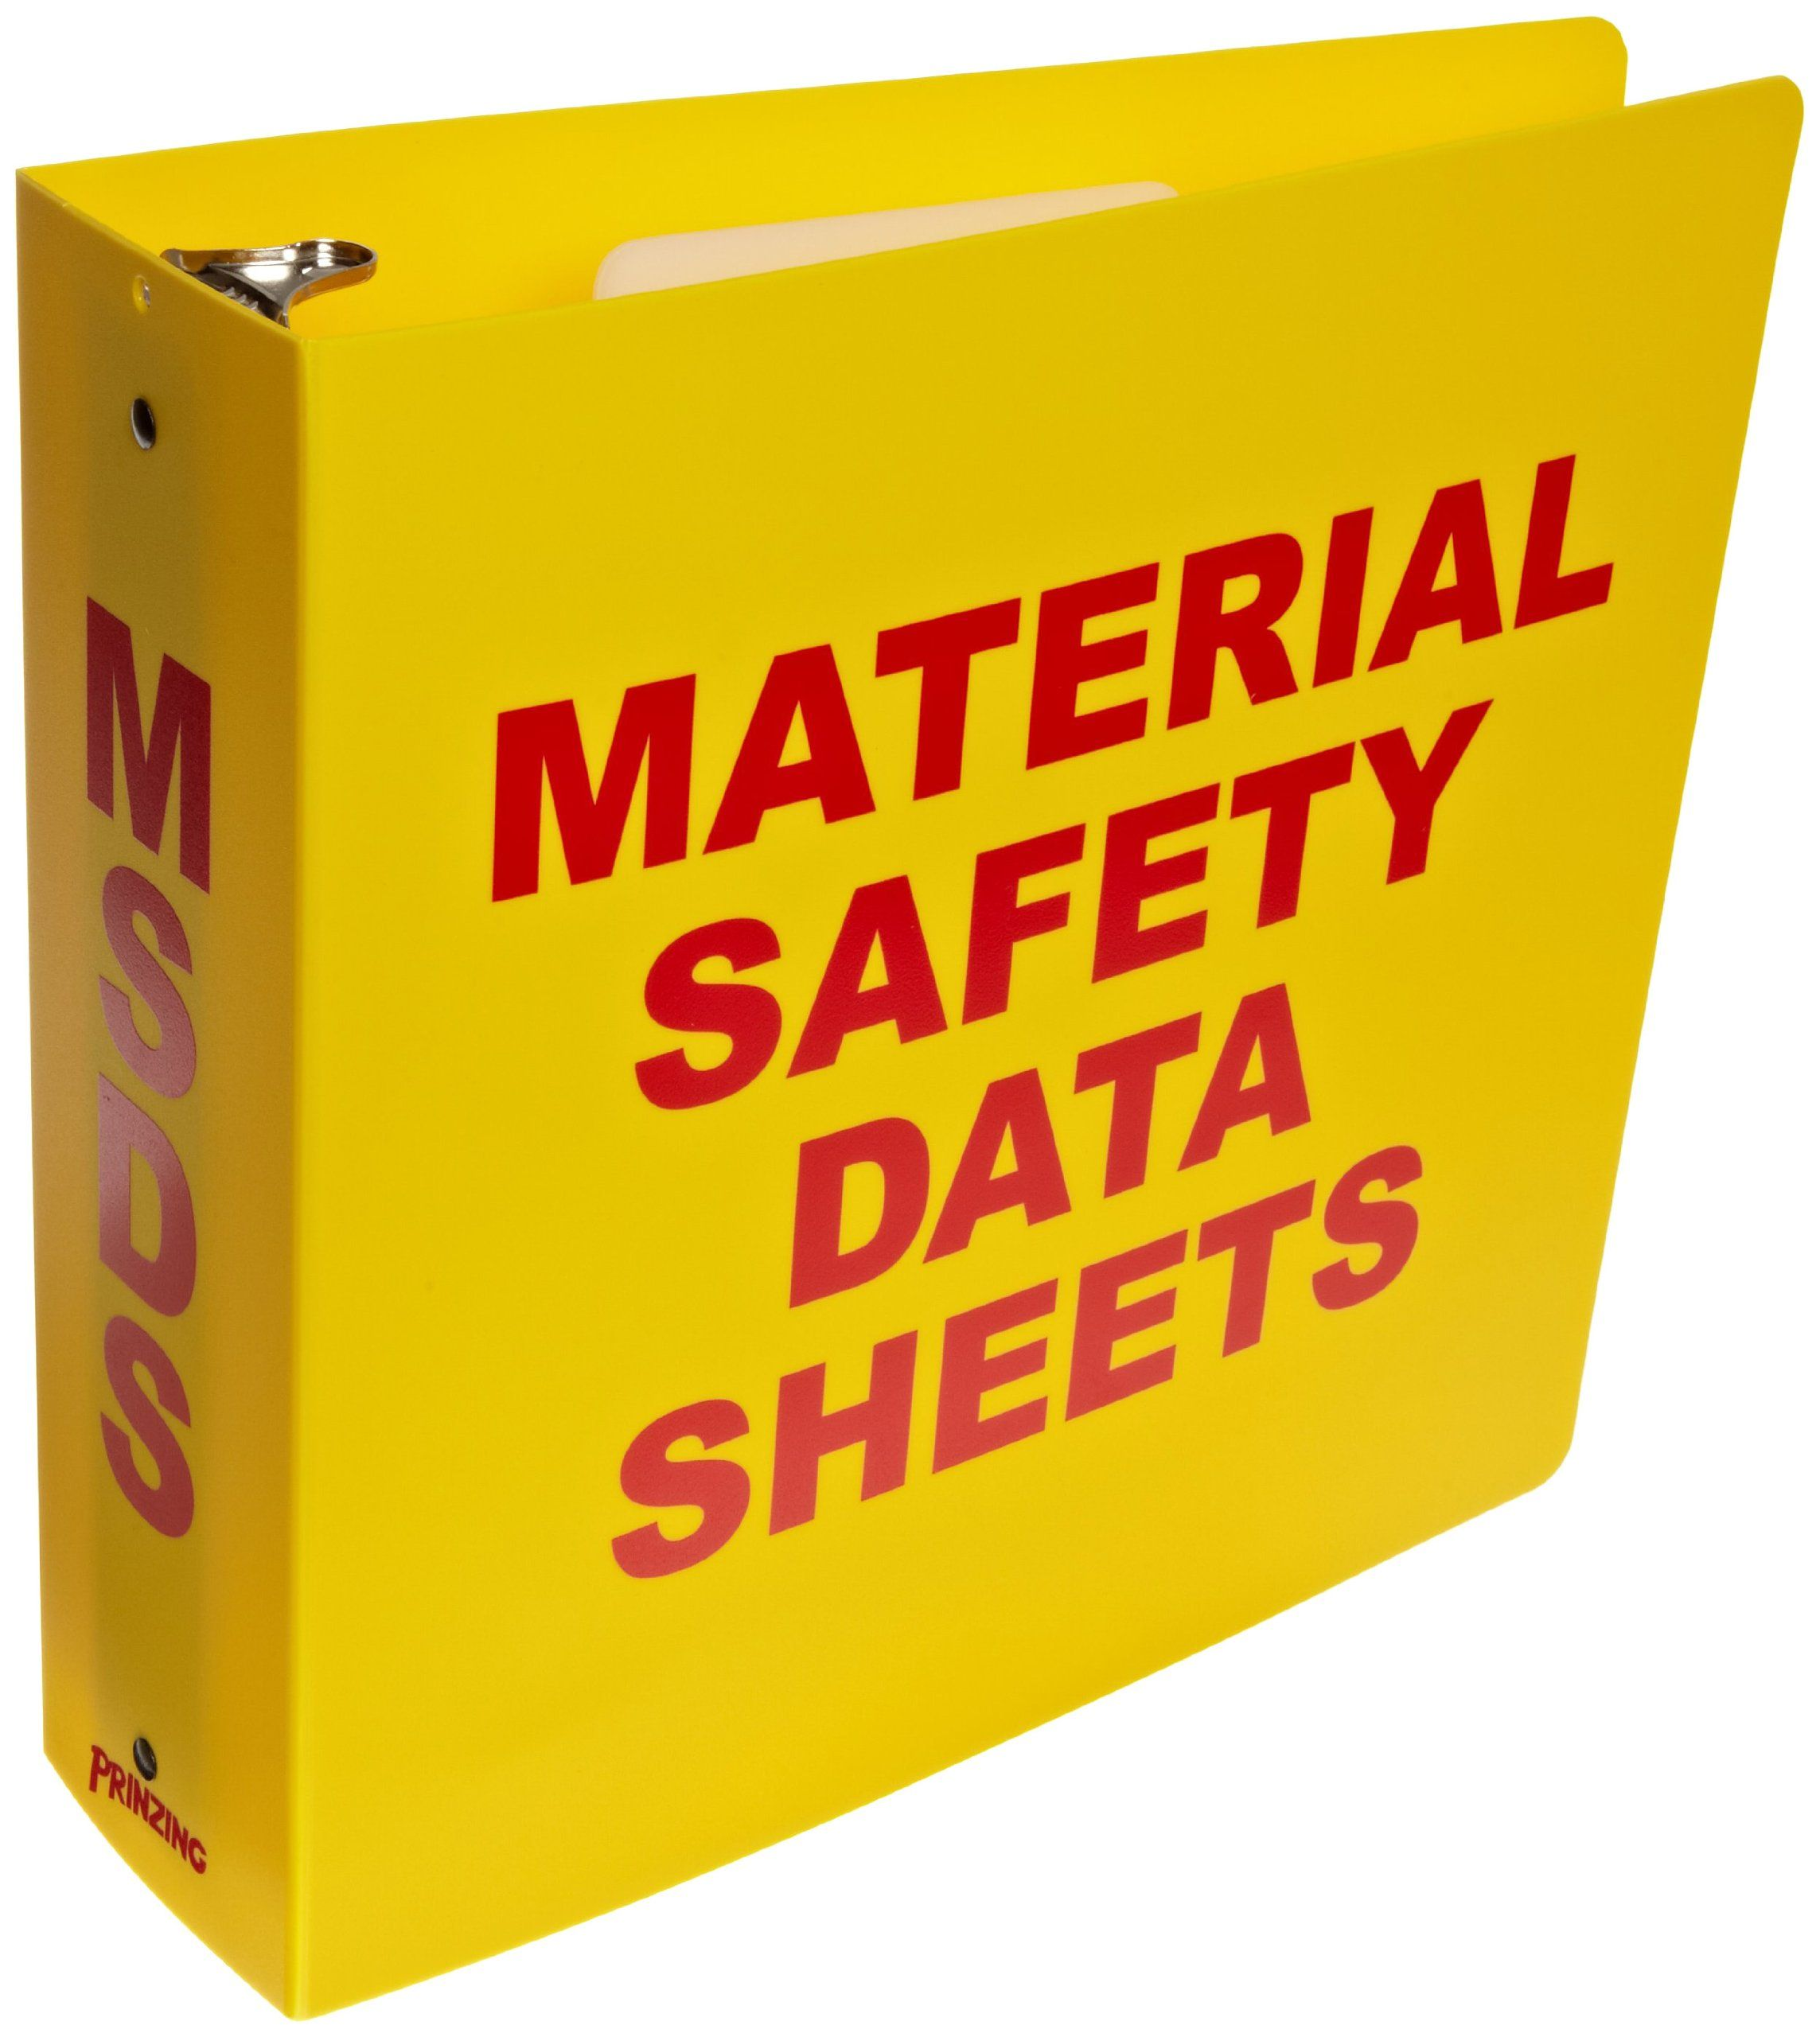 To take free sheets use the totally nice msds online